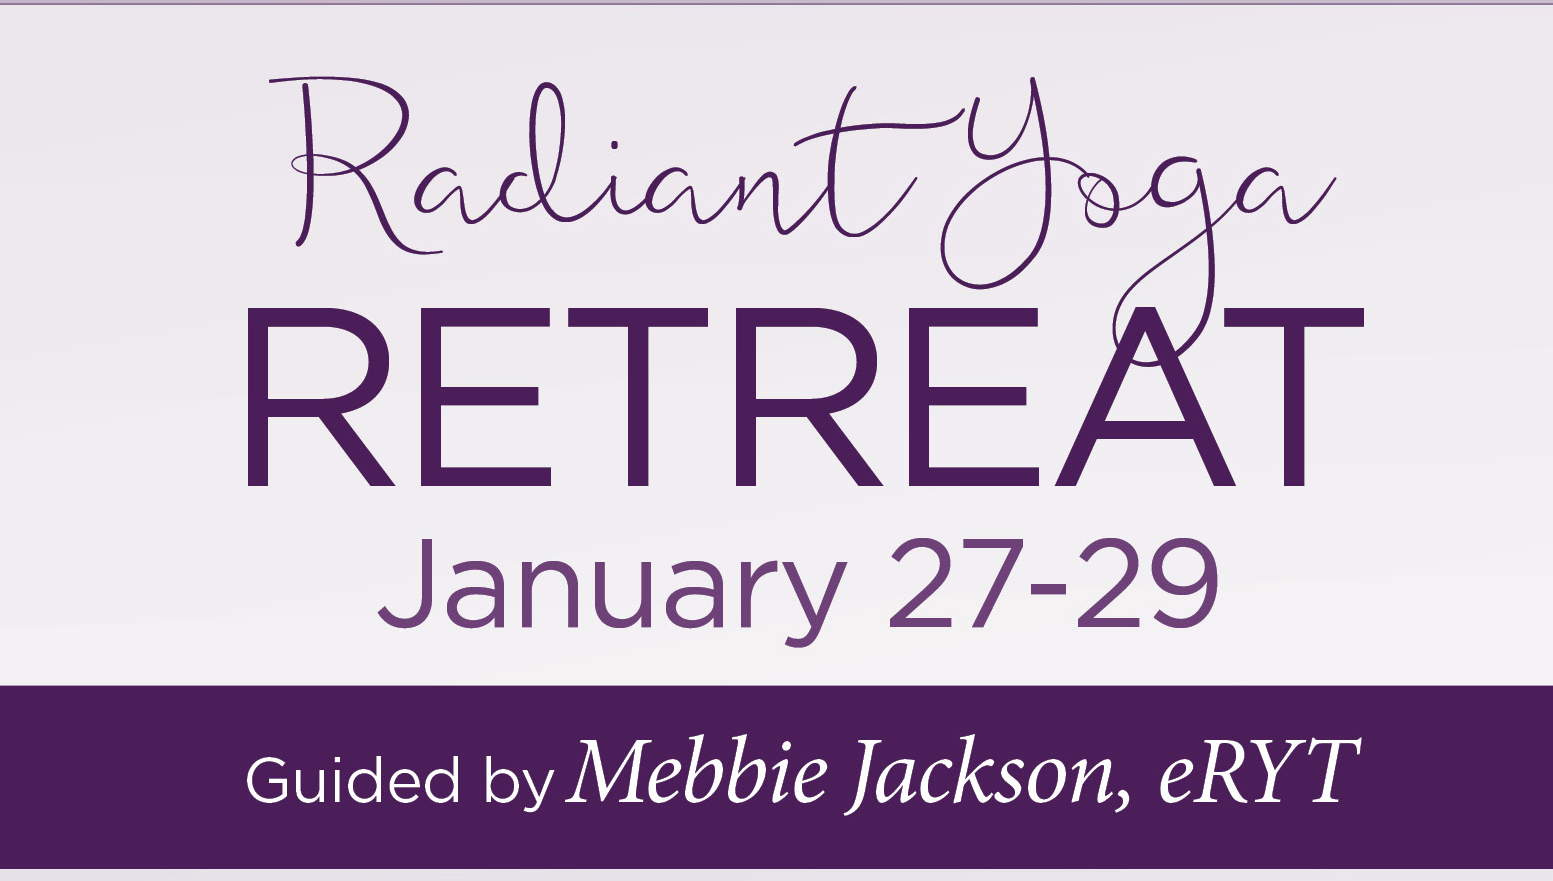 RadiantYoga Weekend